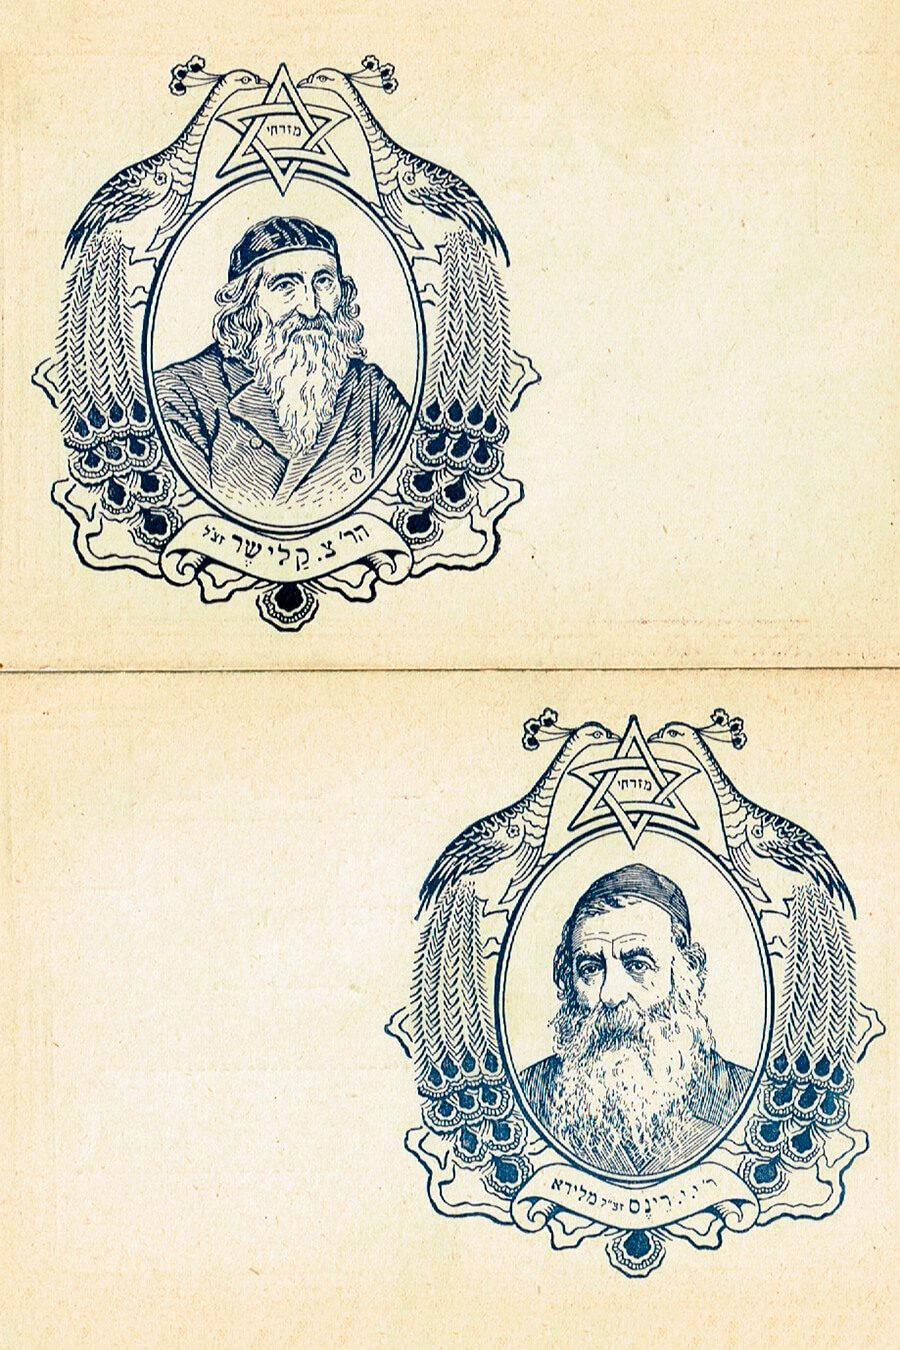 163. A Group of Five Early Zionist Rabbi Postcards